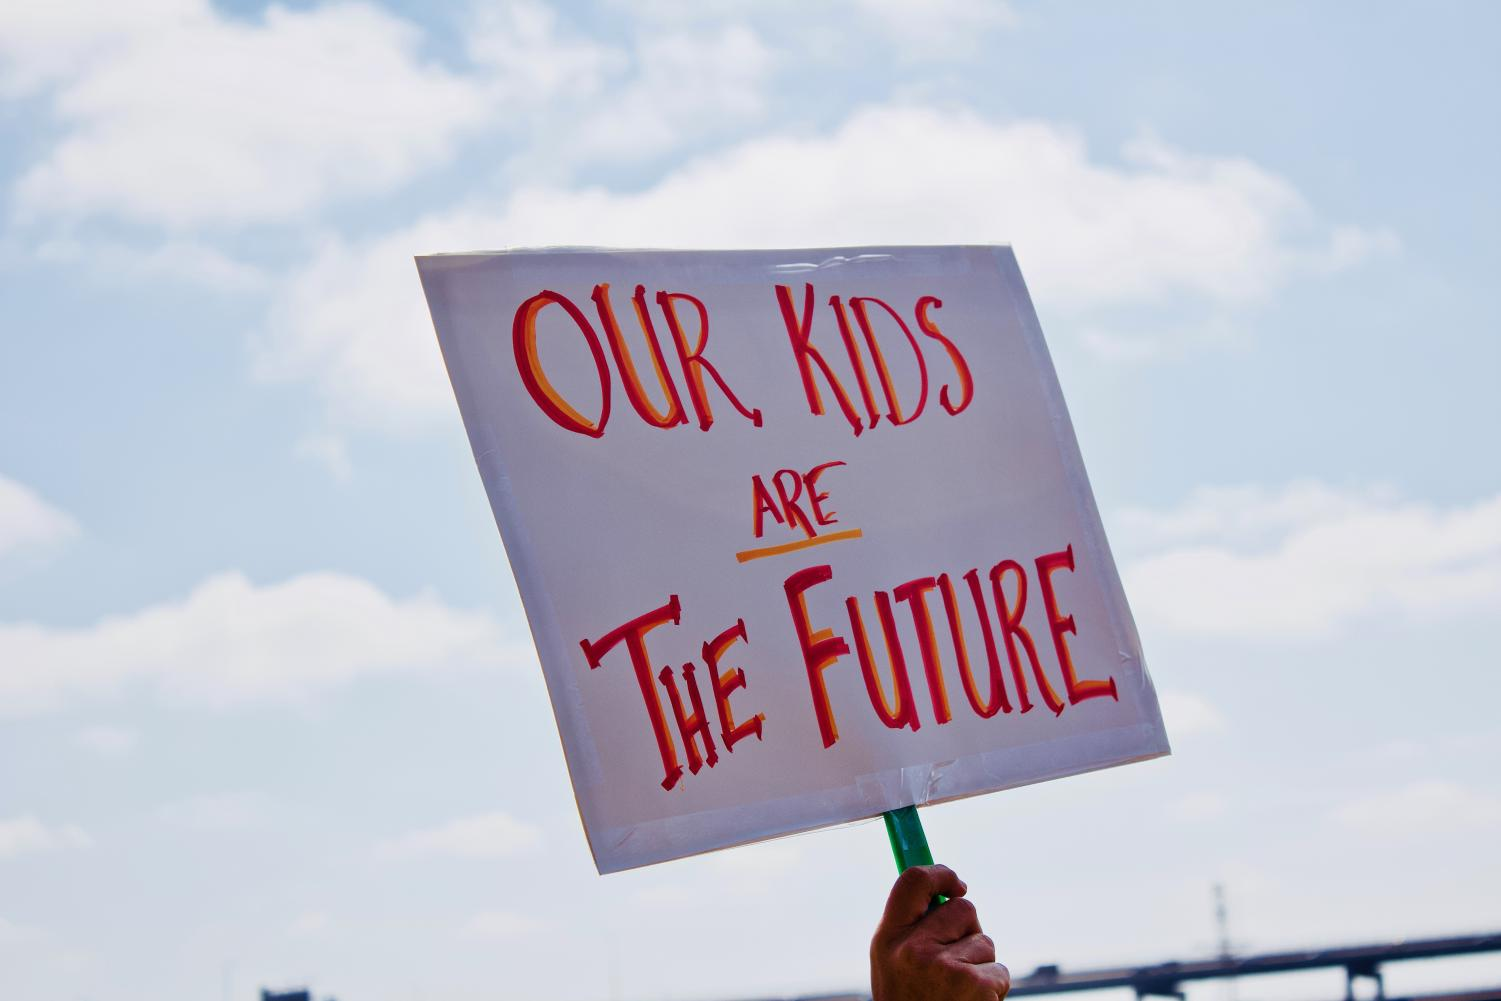 Signs+at+the+rally+included+phrases+such+as+%22Our+kids+are+the+future%22